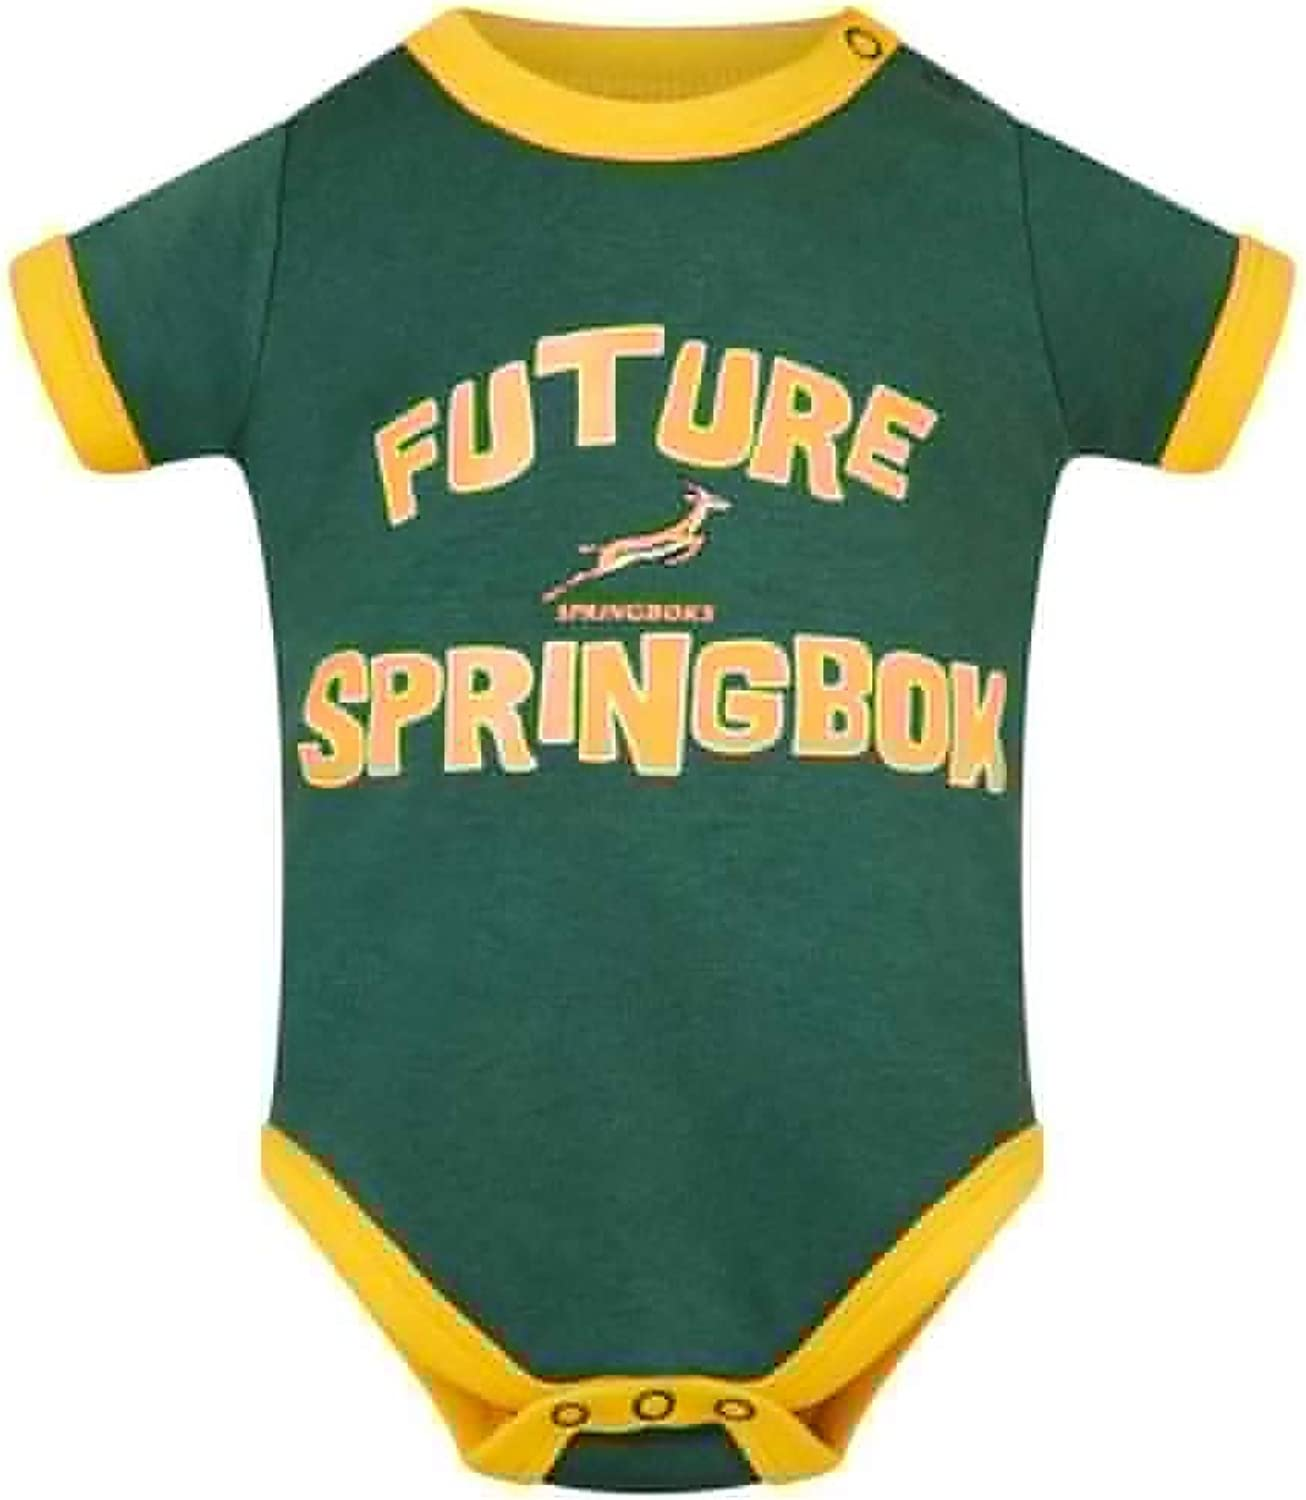 2019//20 Season South Africa Rugby Springboks Baby Bodysuit